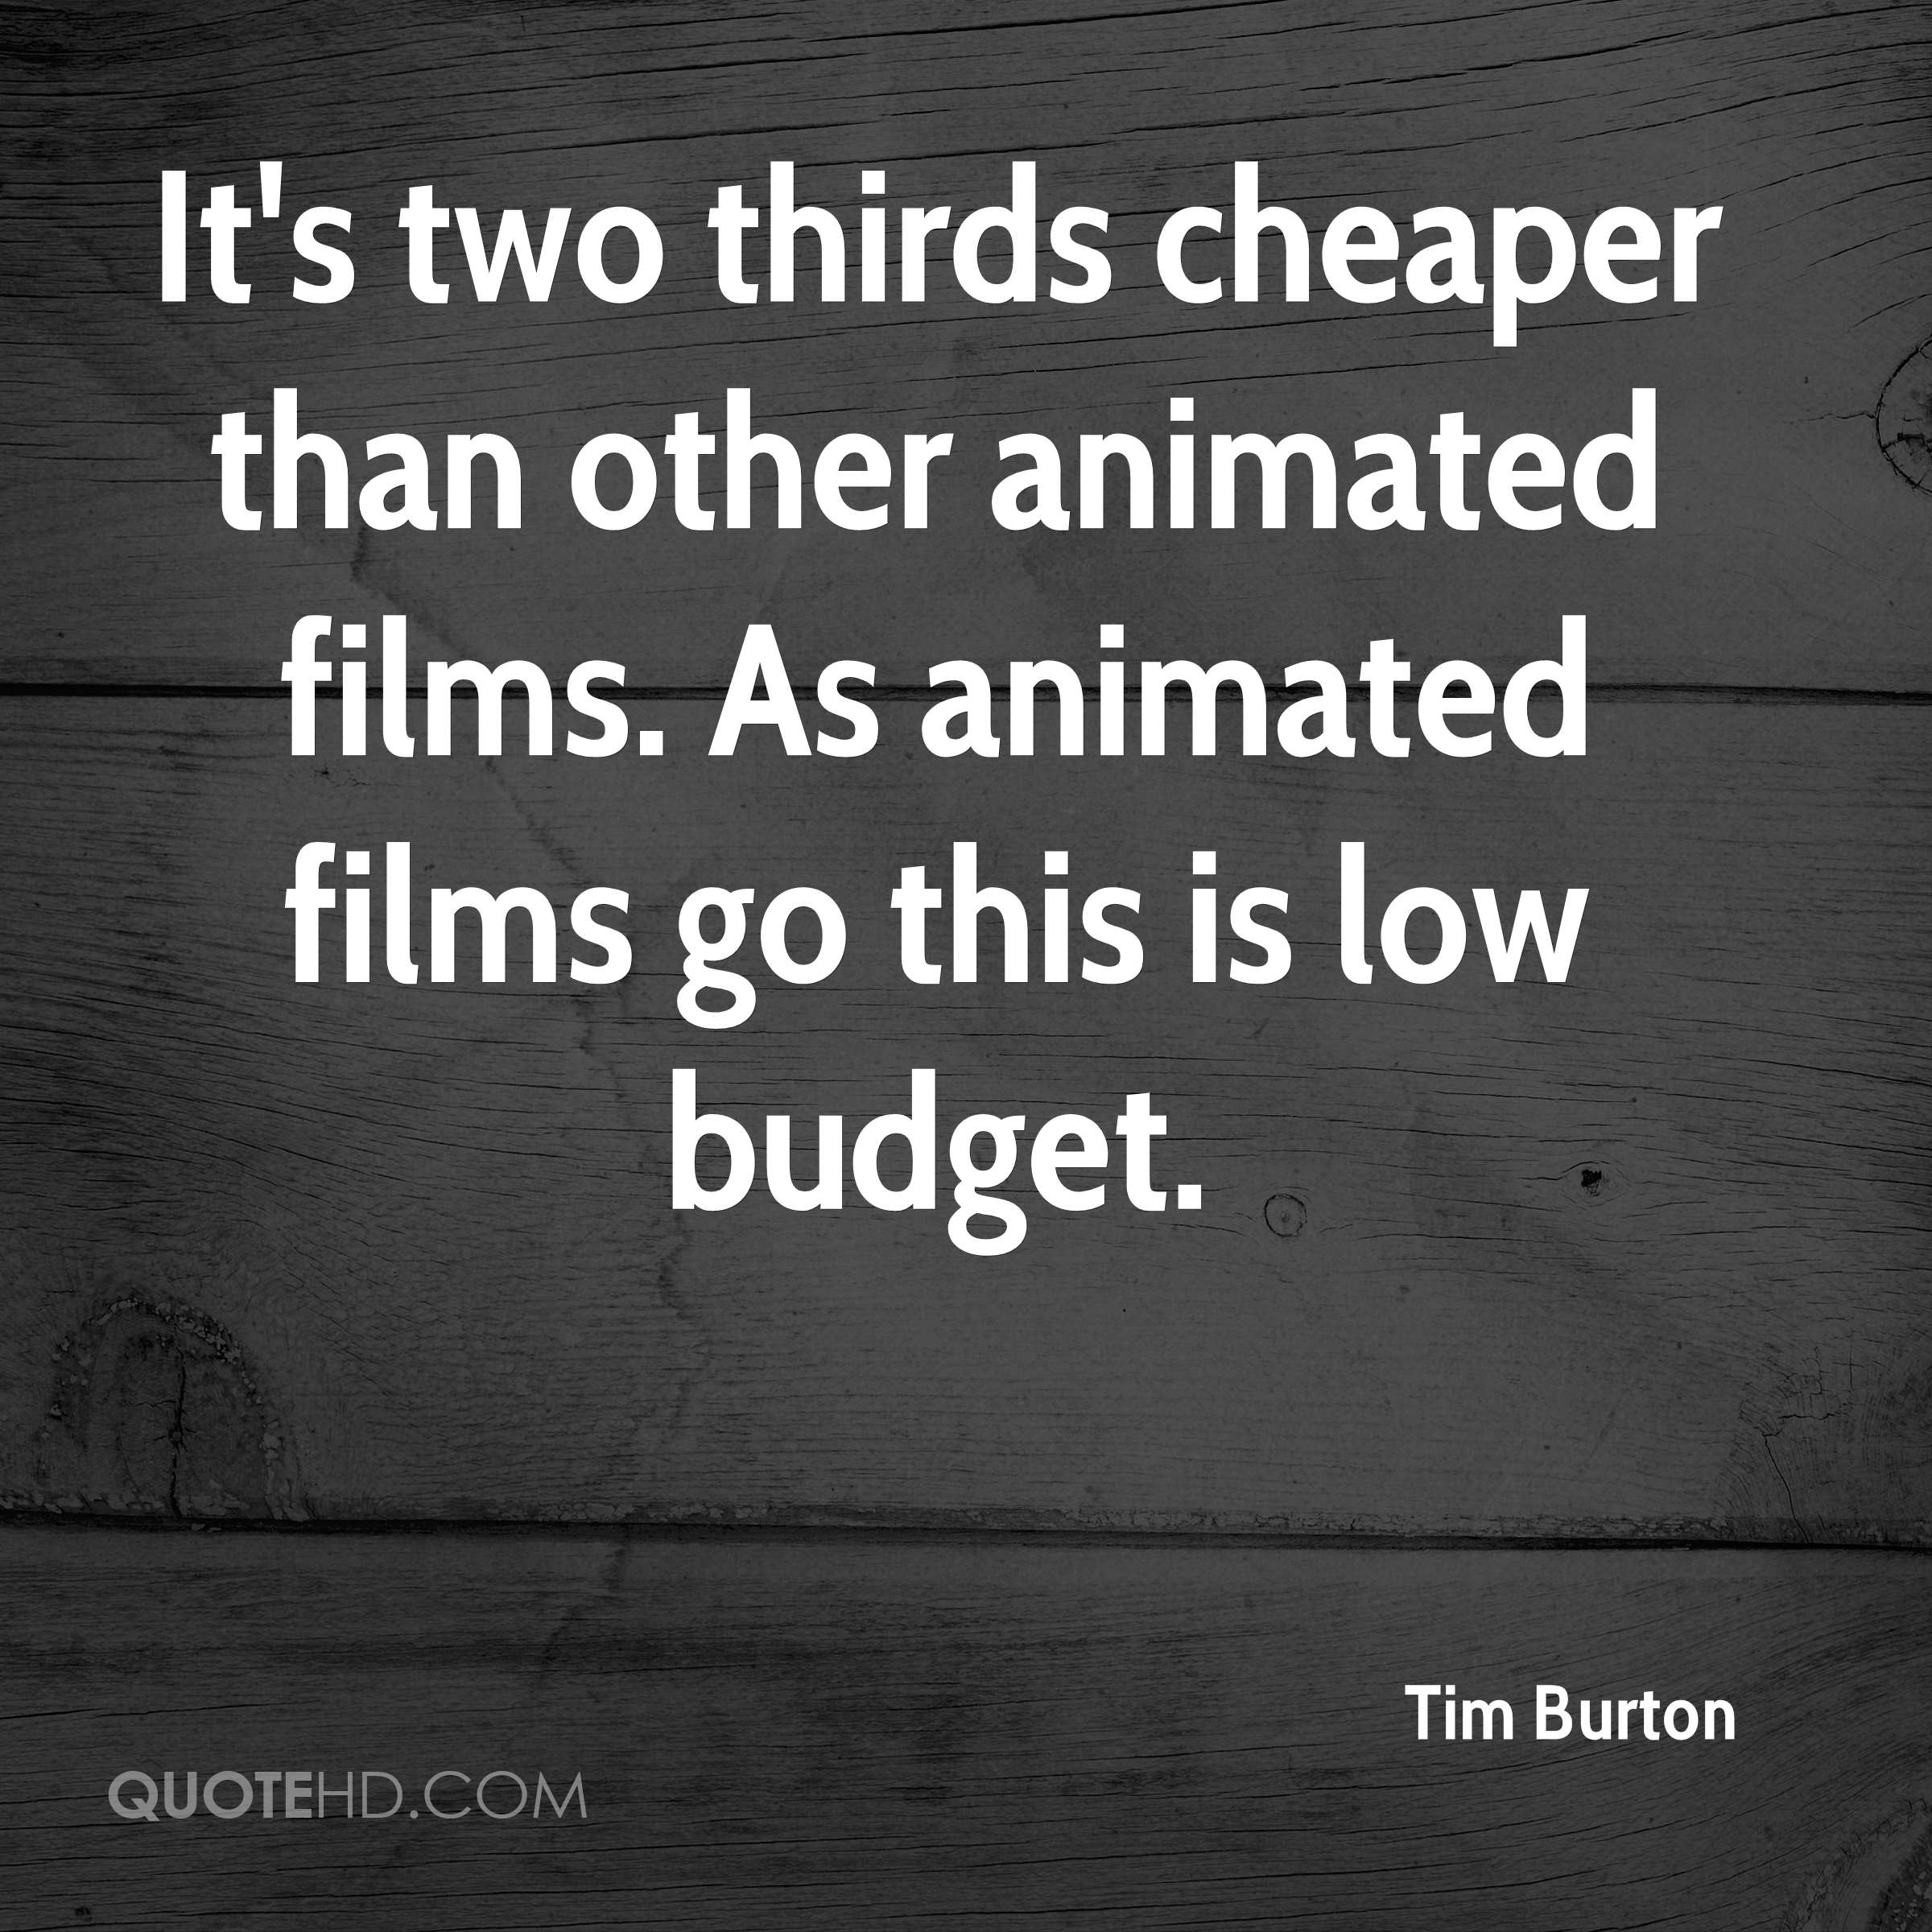 It's two thirds cheaper than other animated films. As animated films go this is low budget.